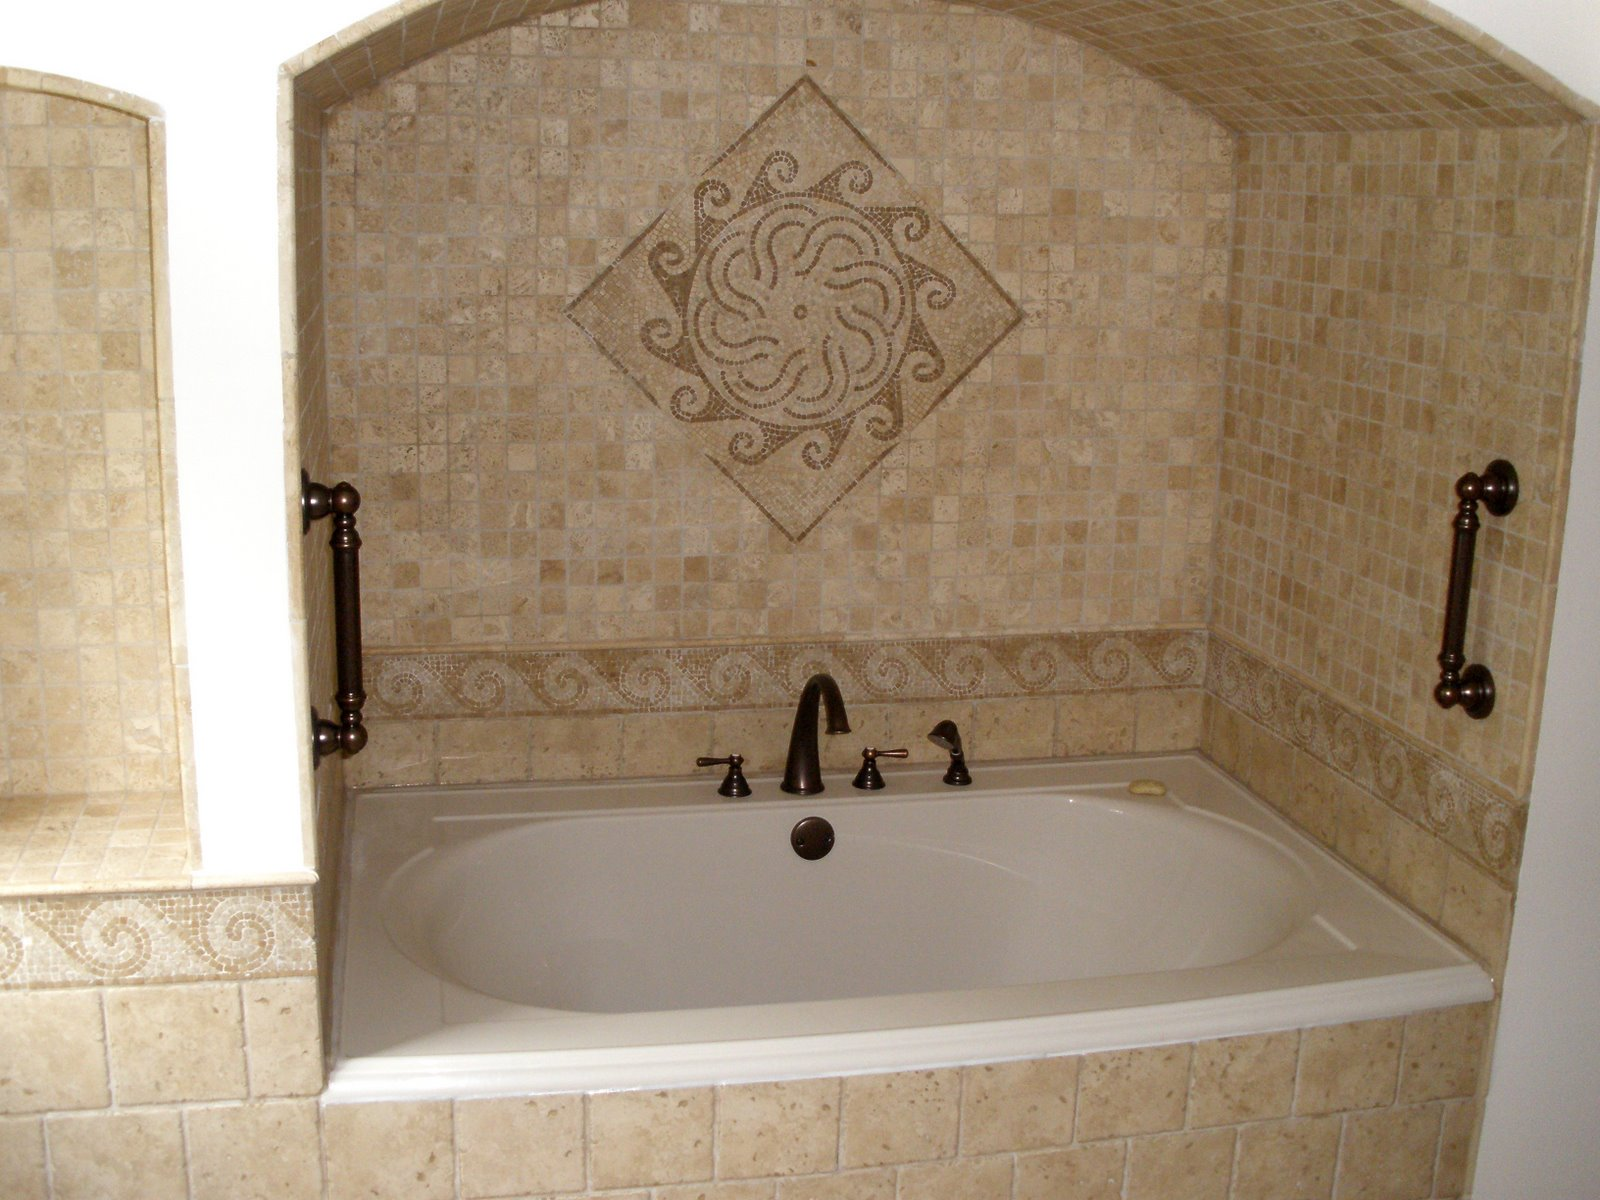 B And Q Bathroom Tile Ideas : Pictures of bathroom tile ideas on a budget